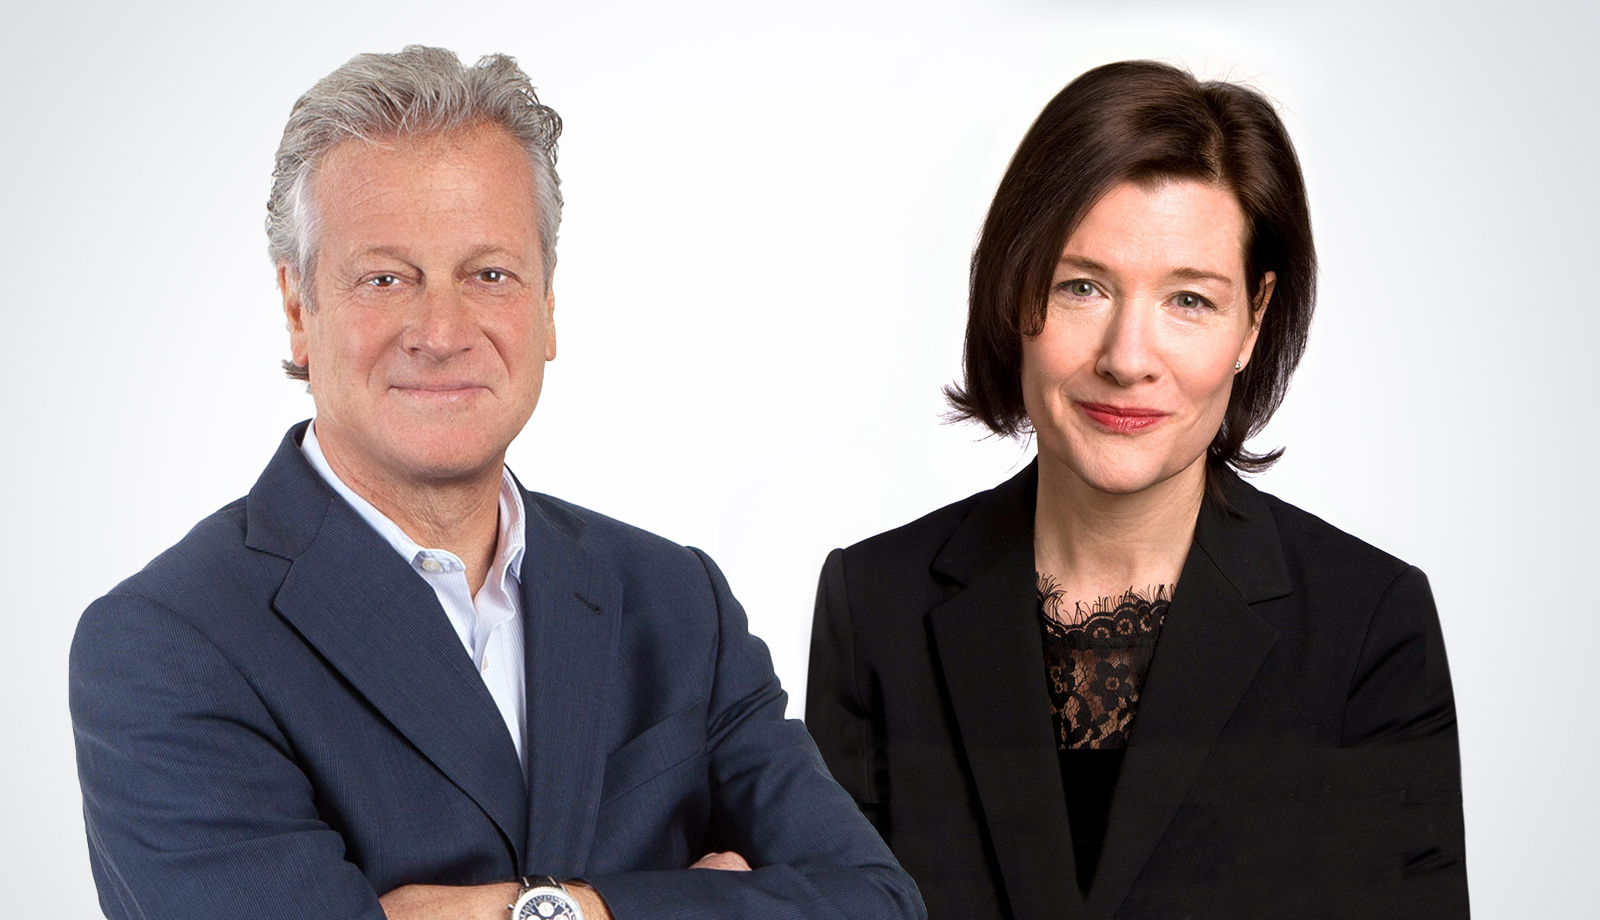 IPG Names Andy Polansky Chairman & CEO of CMG; Gail Heimann Promoted to CEO, Weber Shandwick